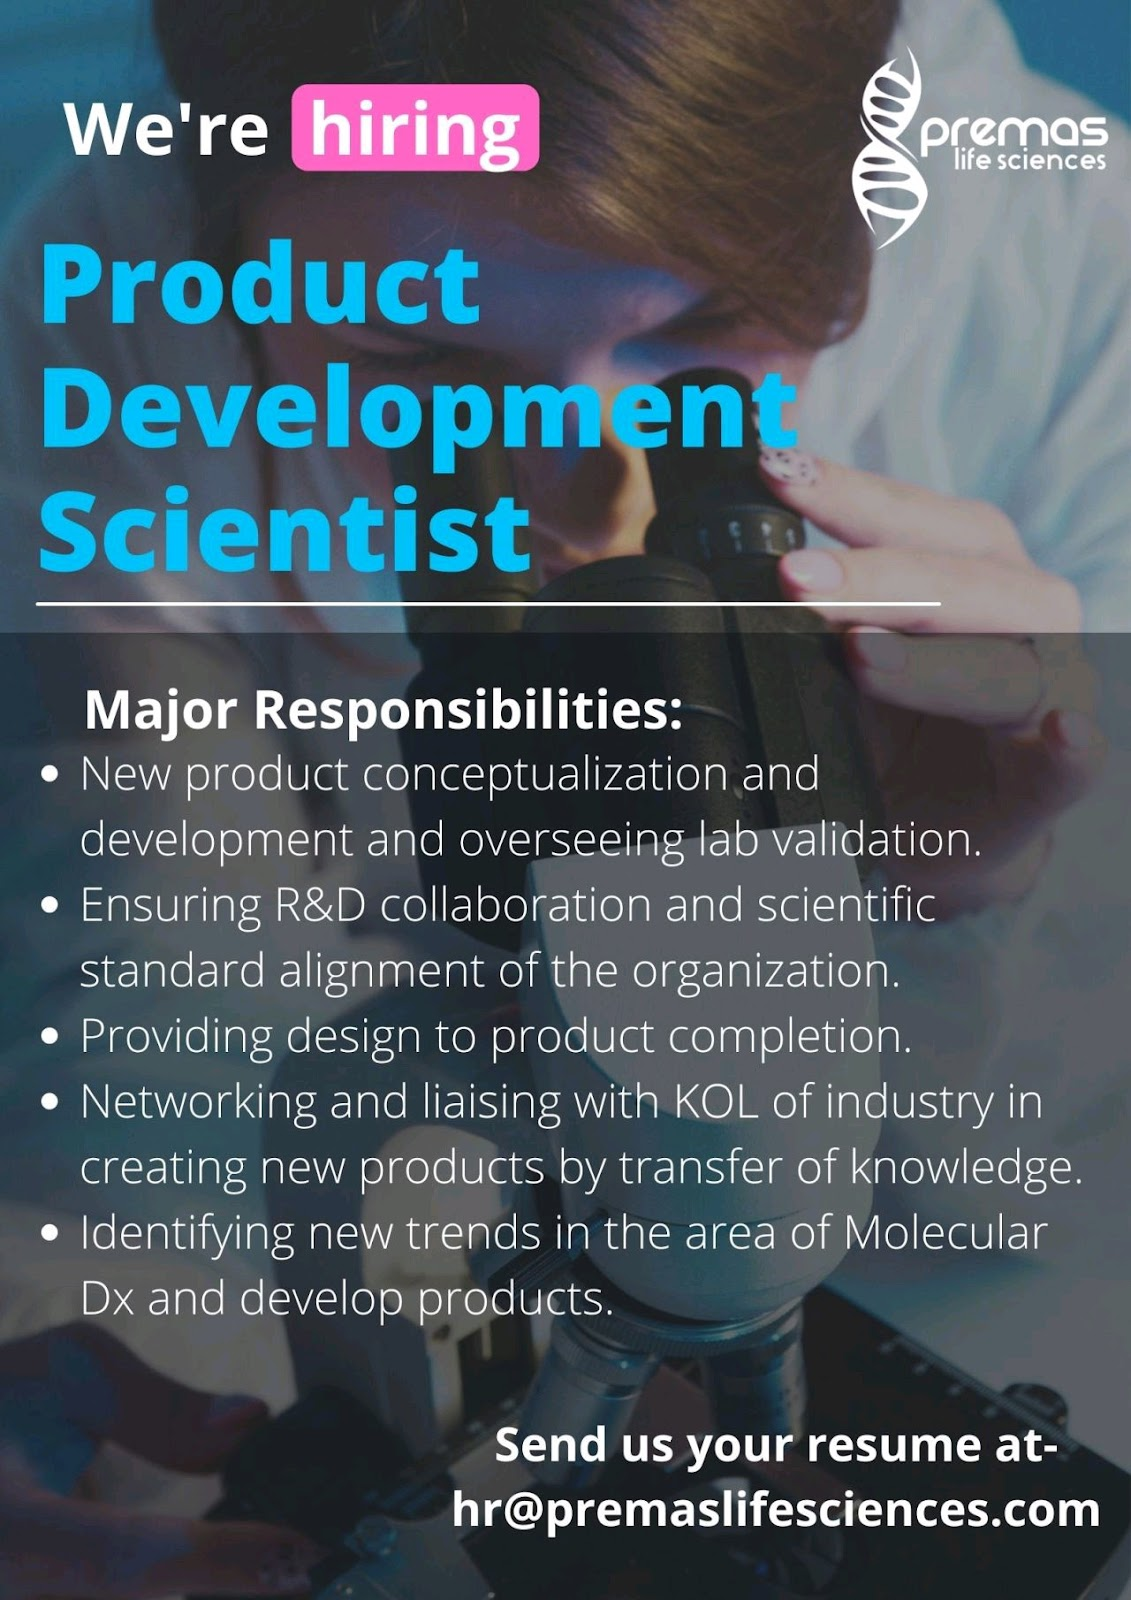 Opening For Product Development Scientist At Premas Life Sciences